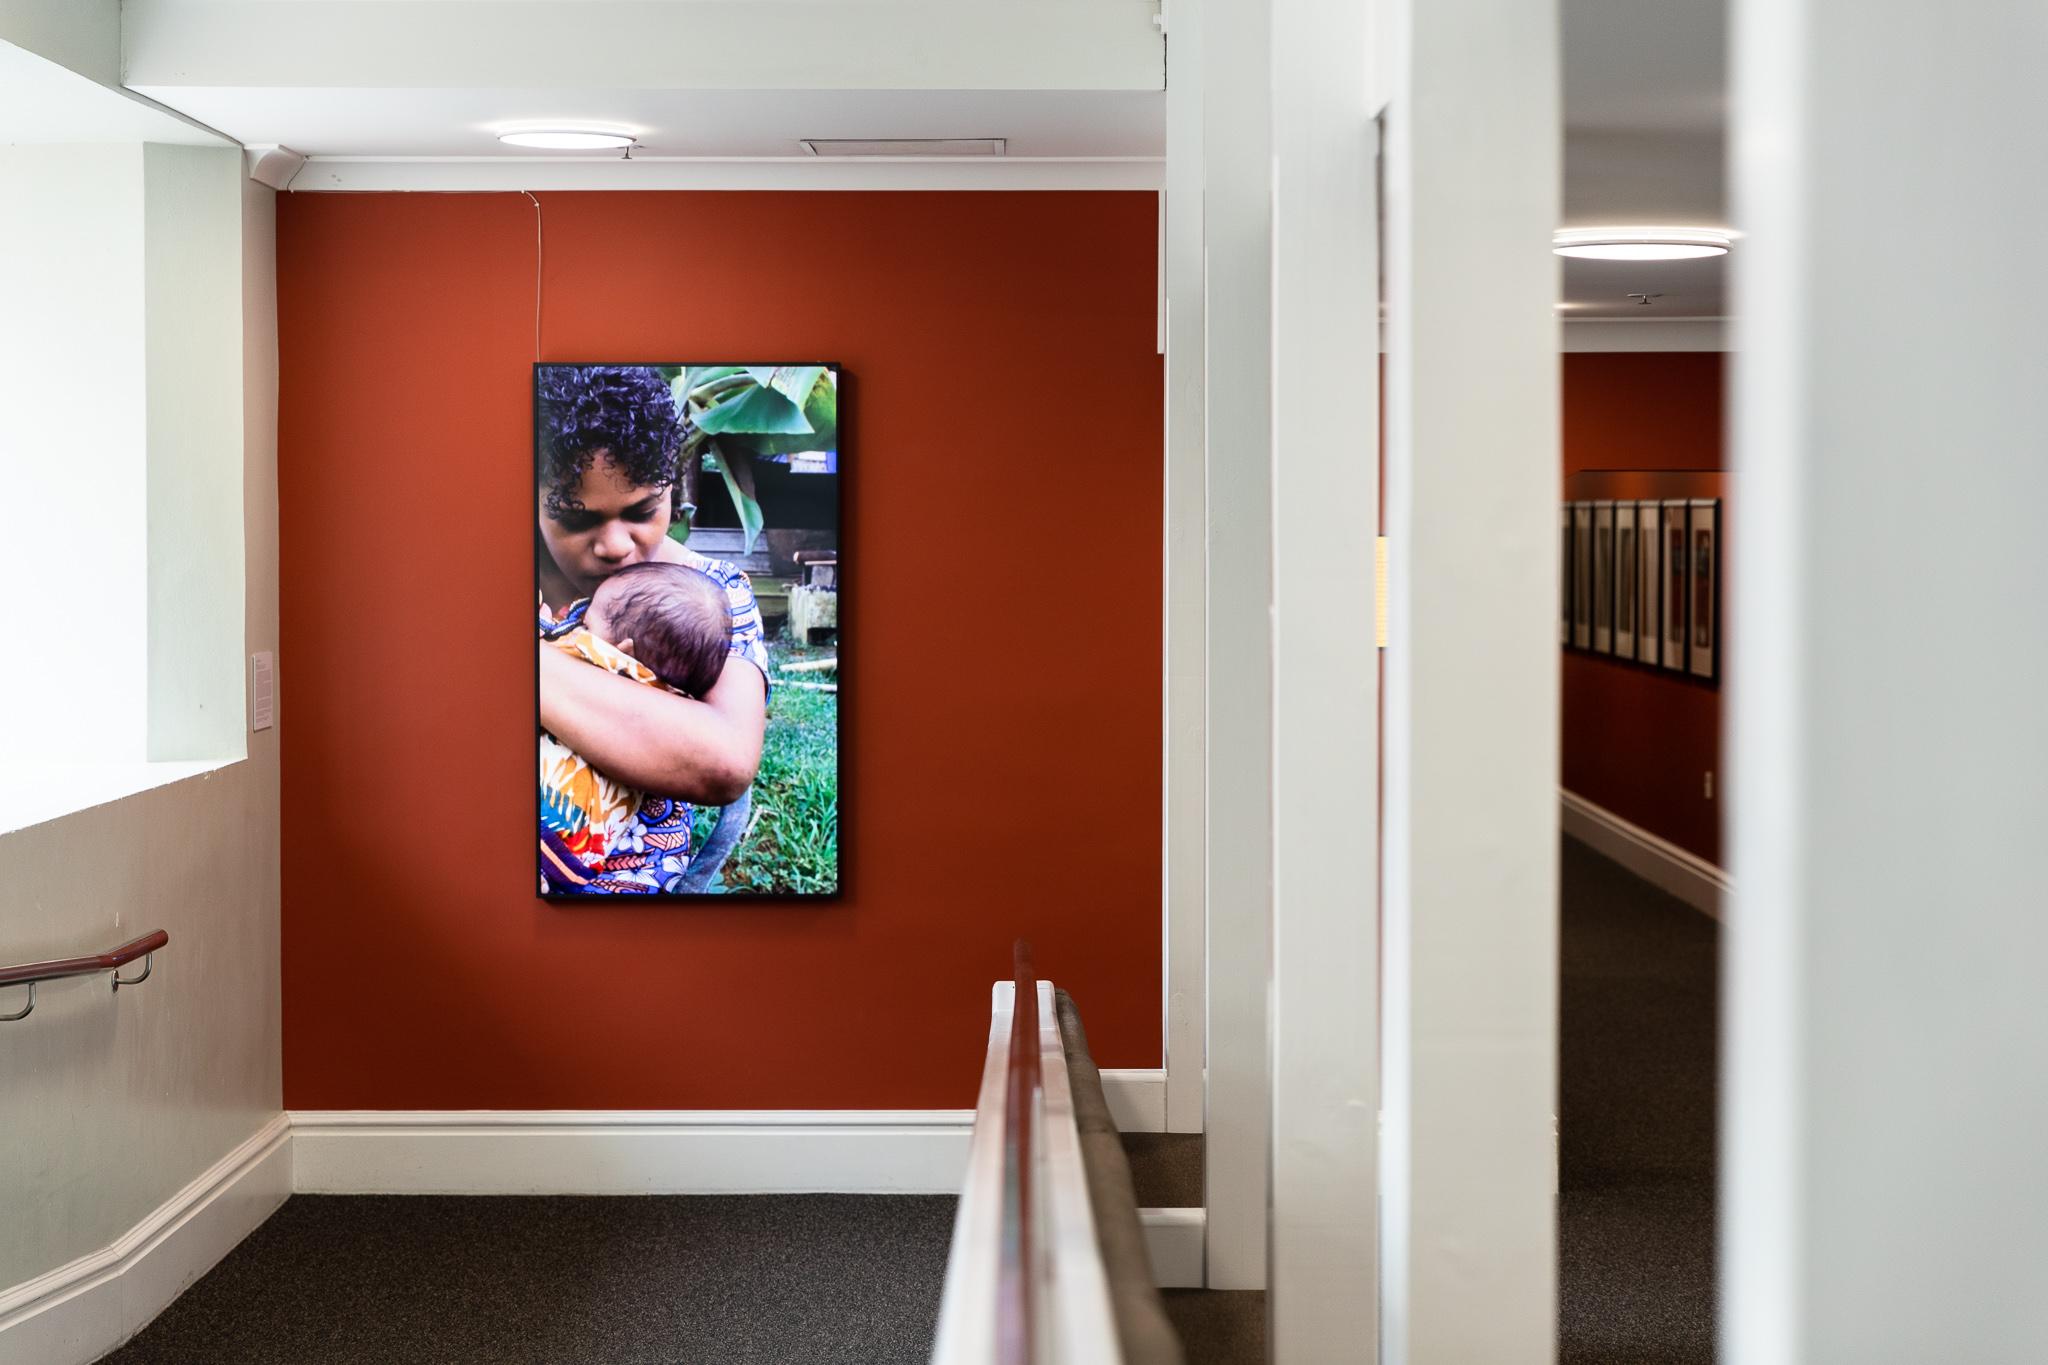 Installation view of Luke Willis Thompson, How Long?, 2018, HD transfer from 16mm Kodak Vision 3 250d stock colour, silent; 11:26 mins, Victoria University of Wellington Art Collection, purchased 2019, photo: Images Services, Victoria University of Wellington